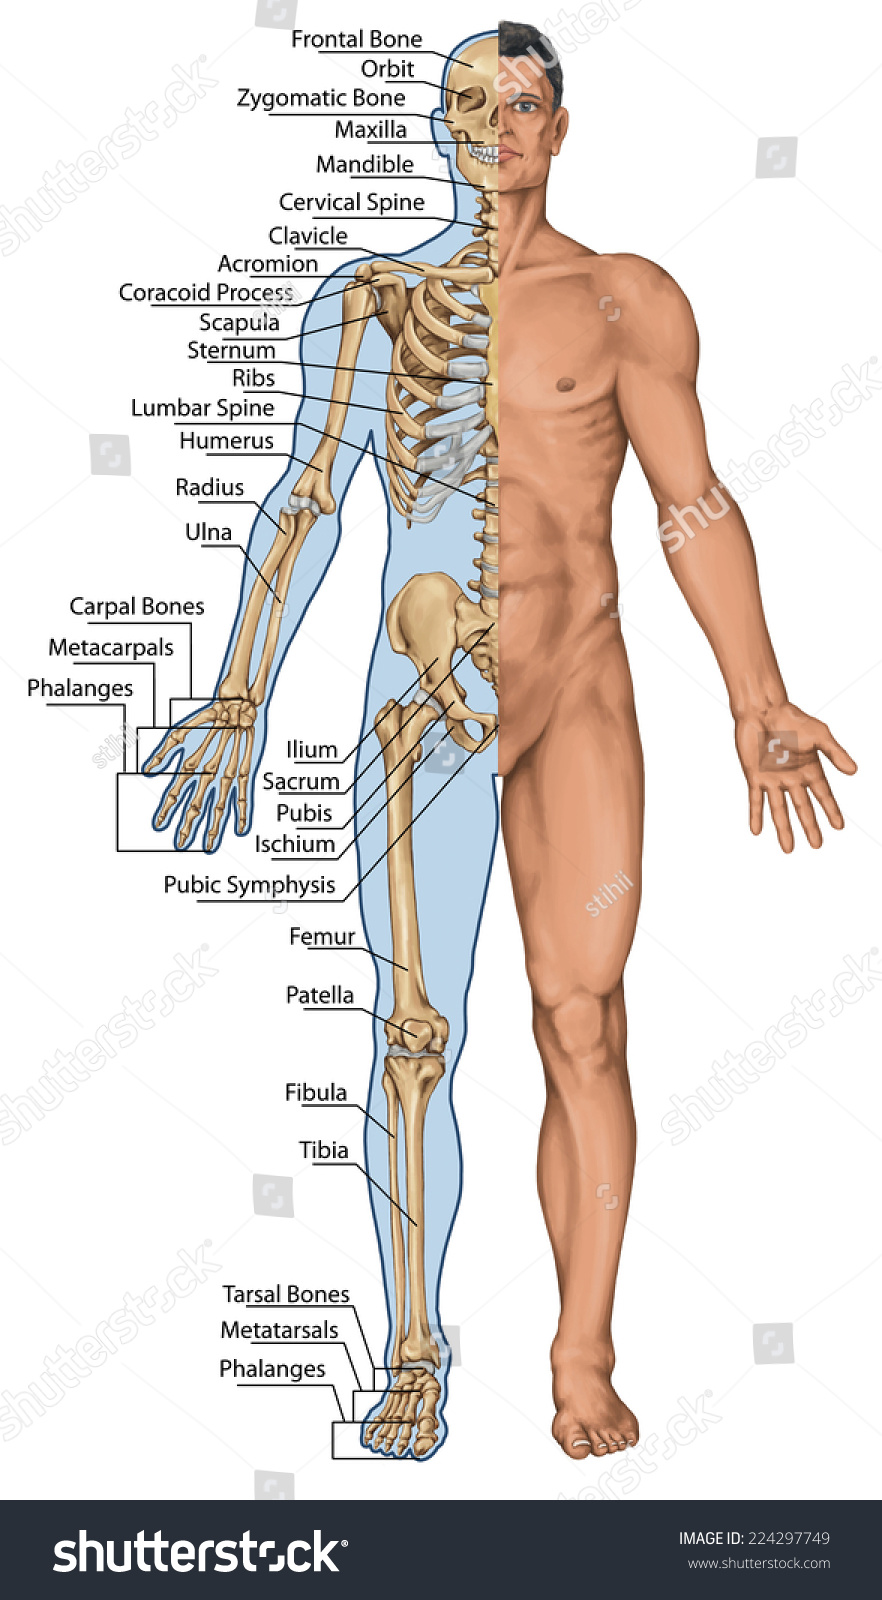 Royalty Free Anatomical Board Anatomical Body 224297749 Stock